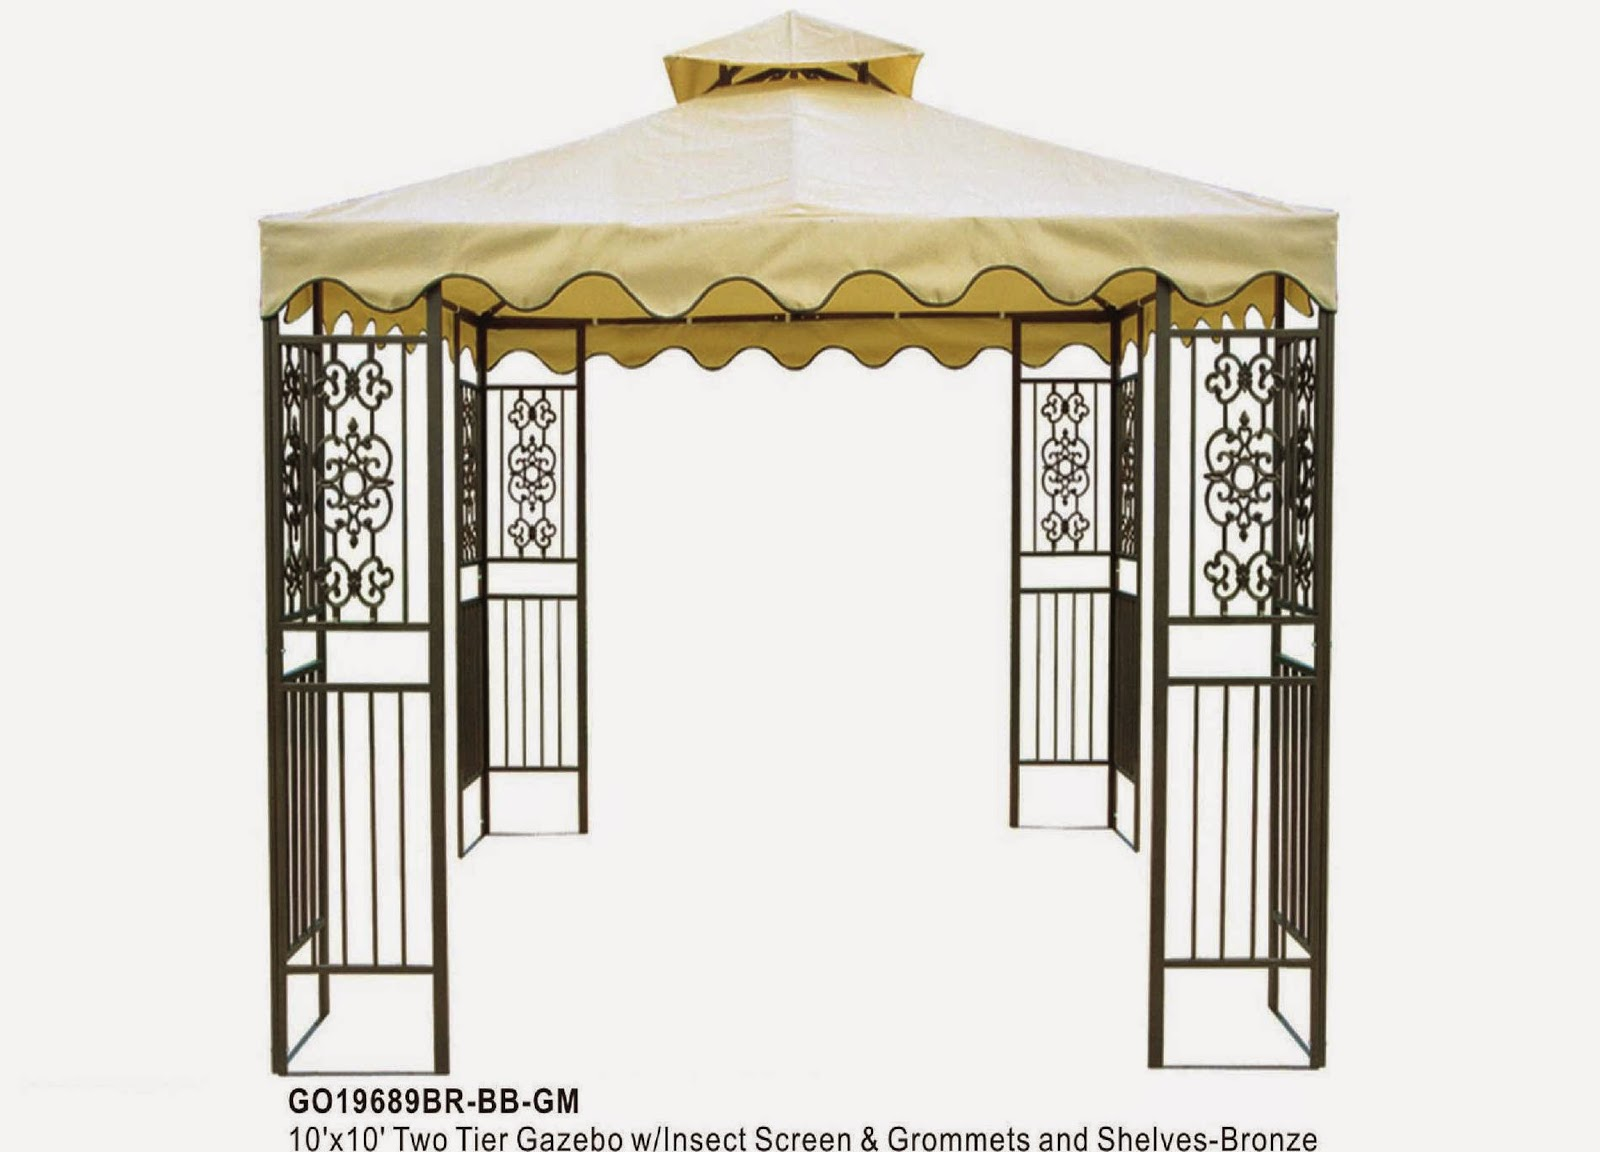 Gazebo Kings Gazebos For Sale Online: Metal Gazebo Kits